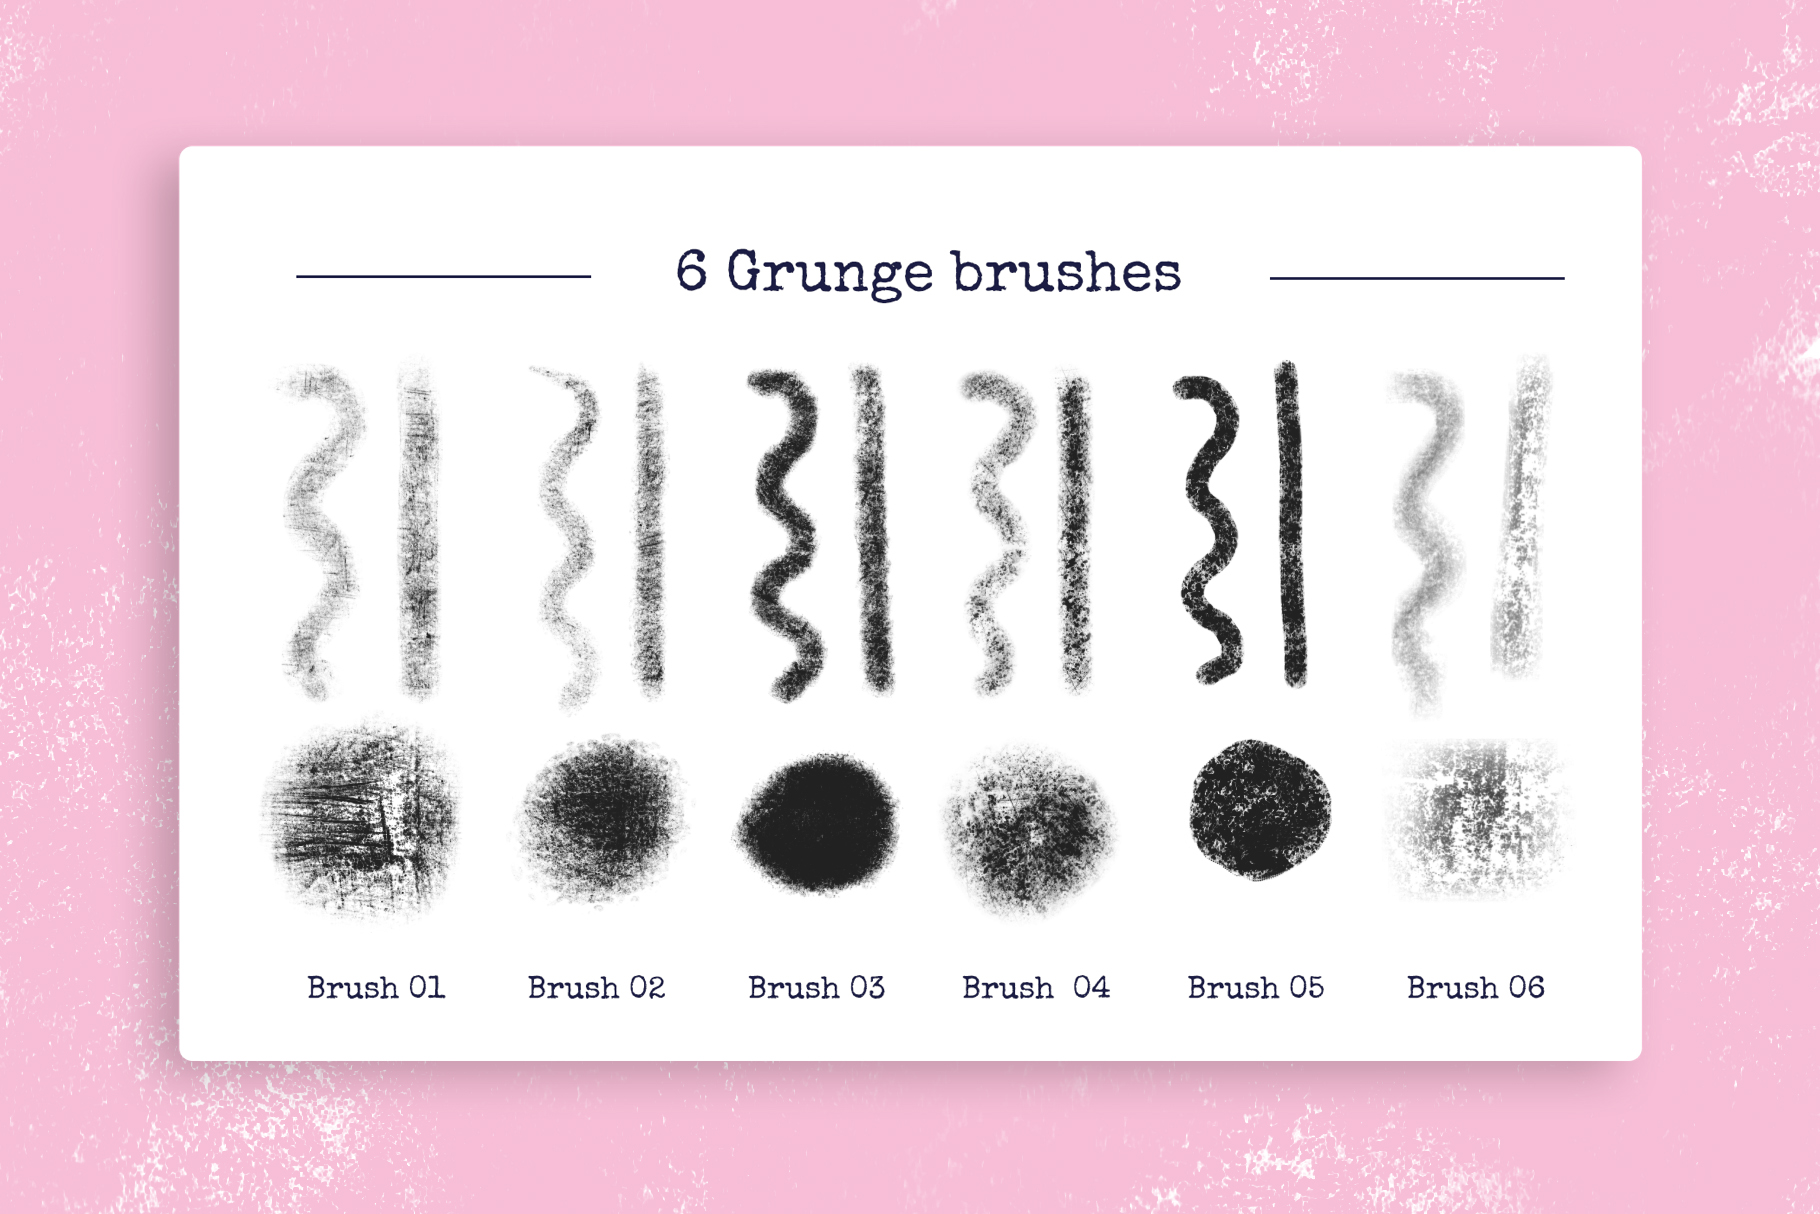 Grunge Procreate Brushes example image 2